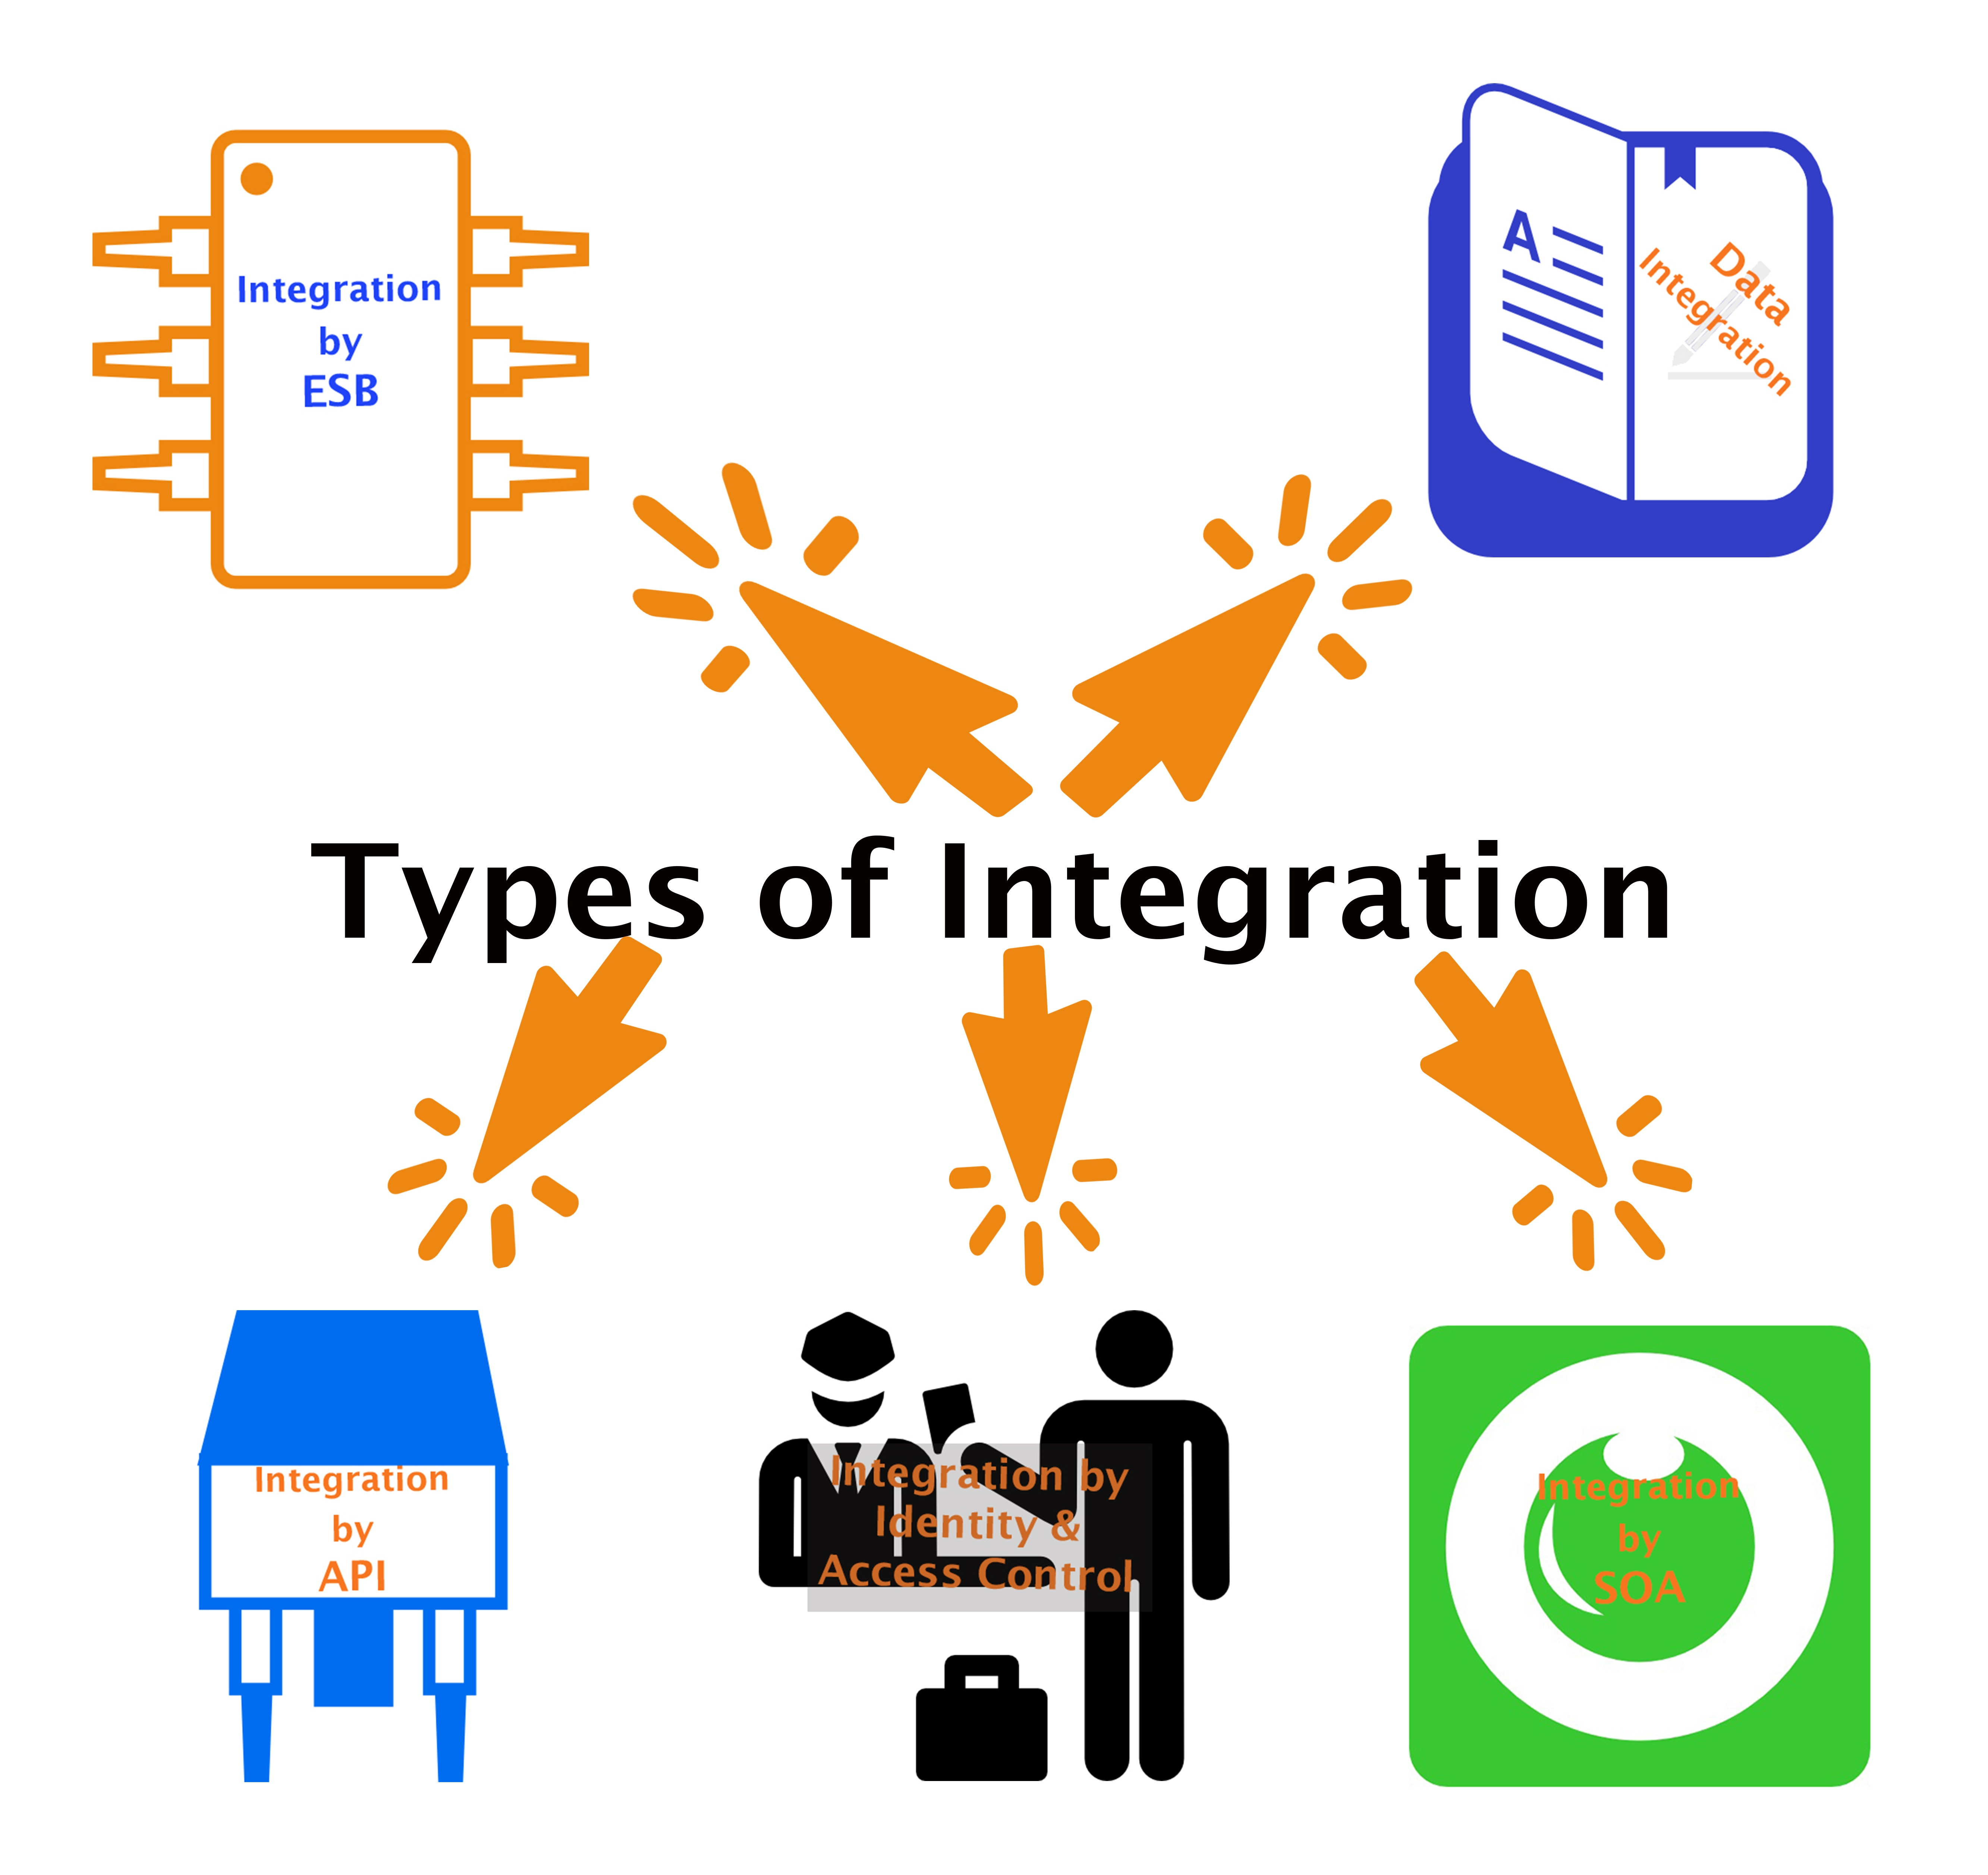 Fig 2,Type of Integration